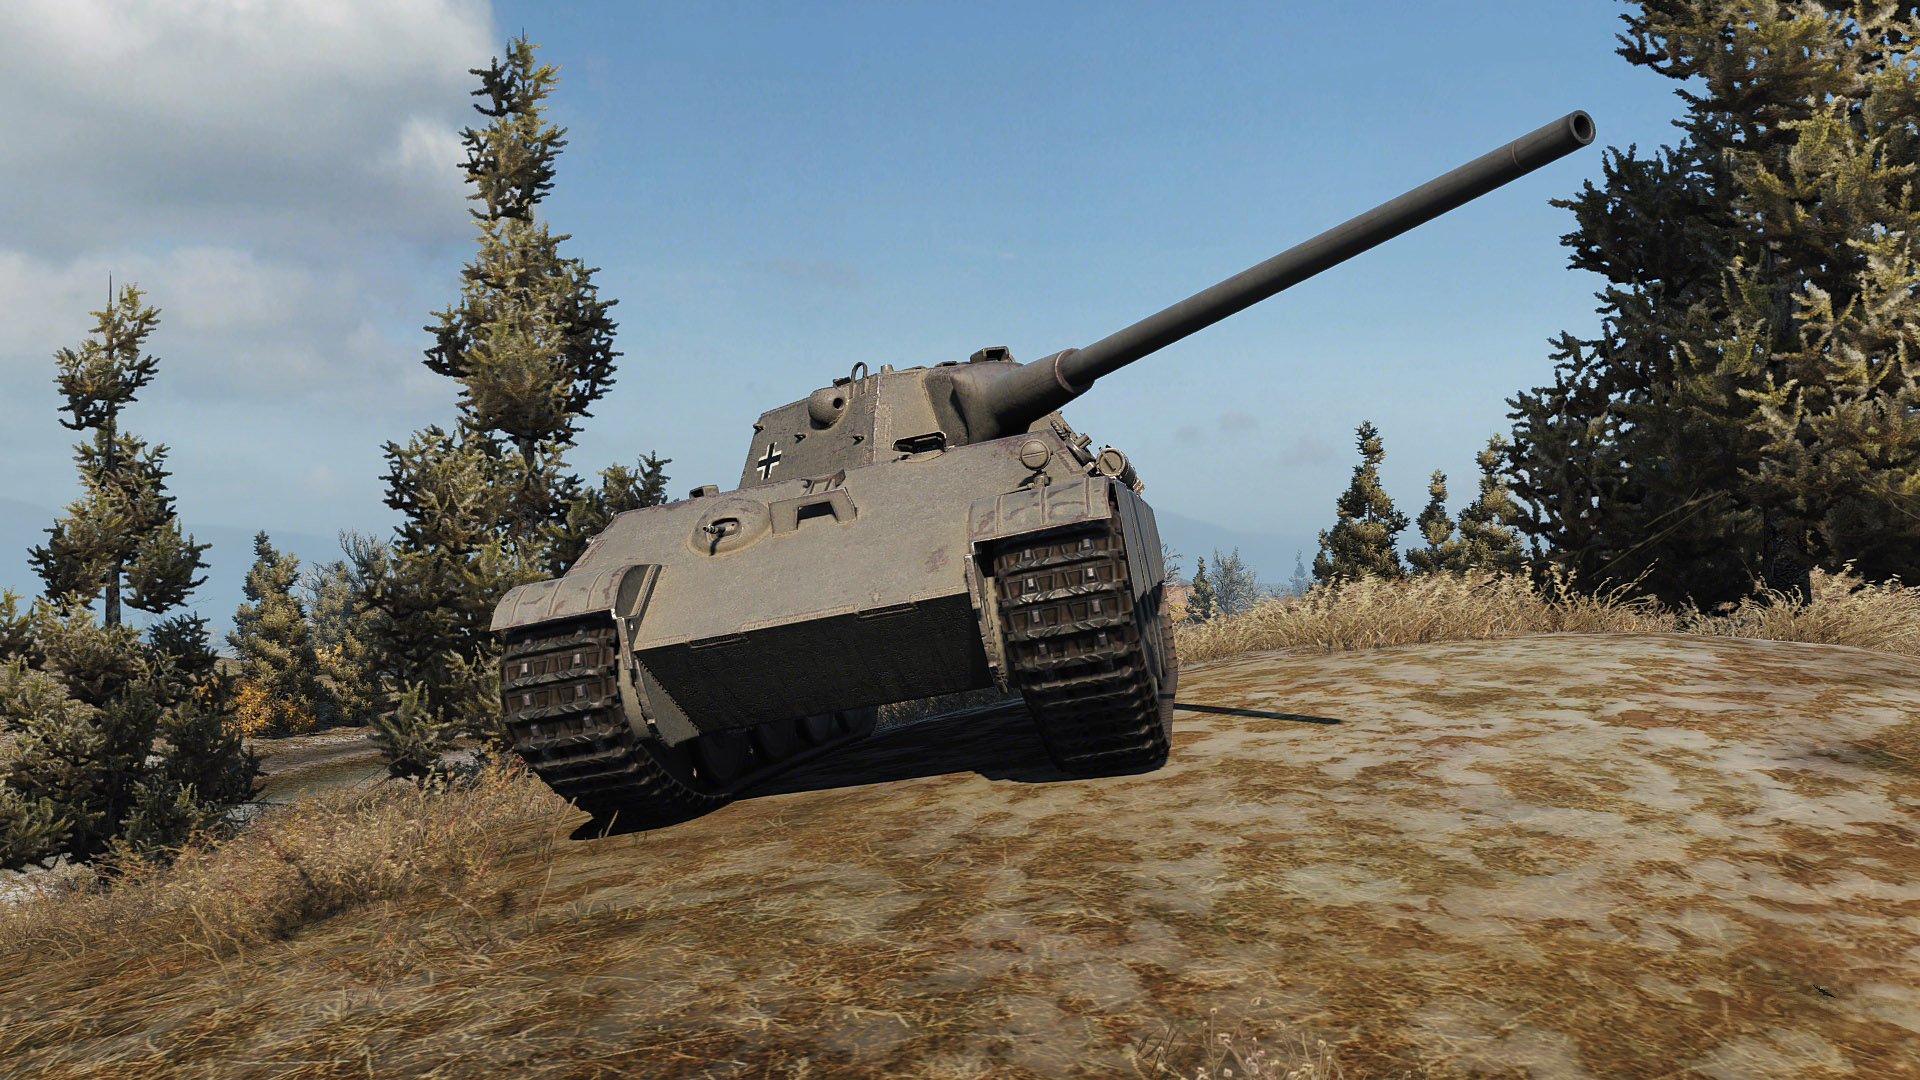 The Panther mit 8,8cm has prominent glacis armor.